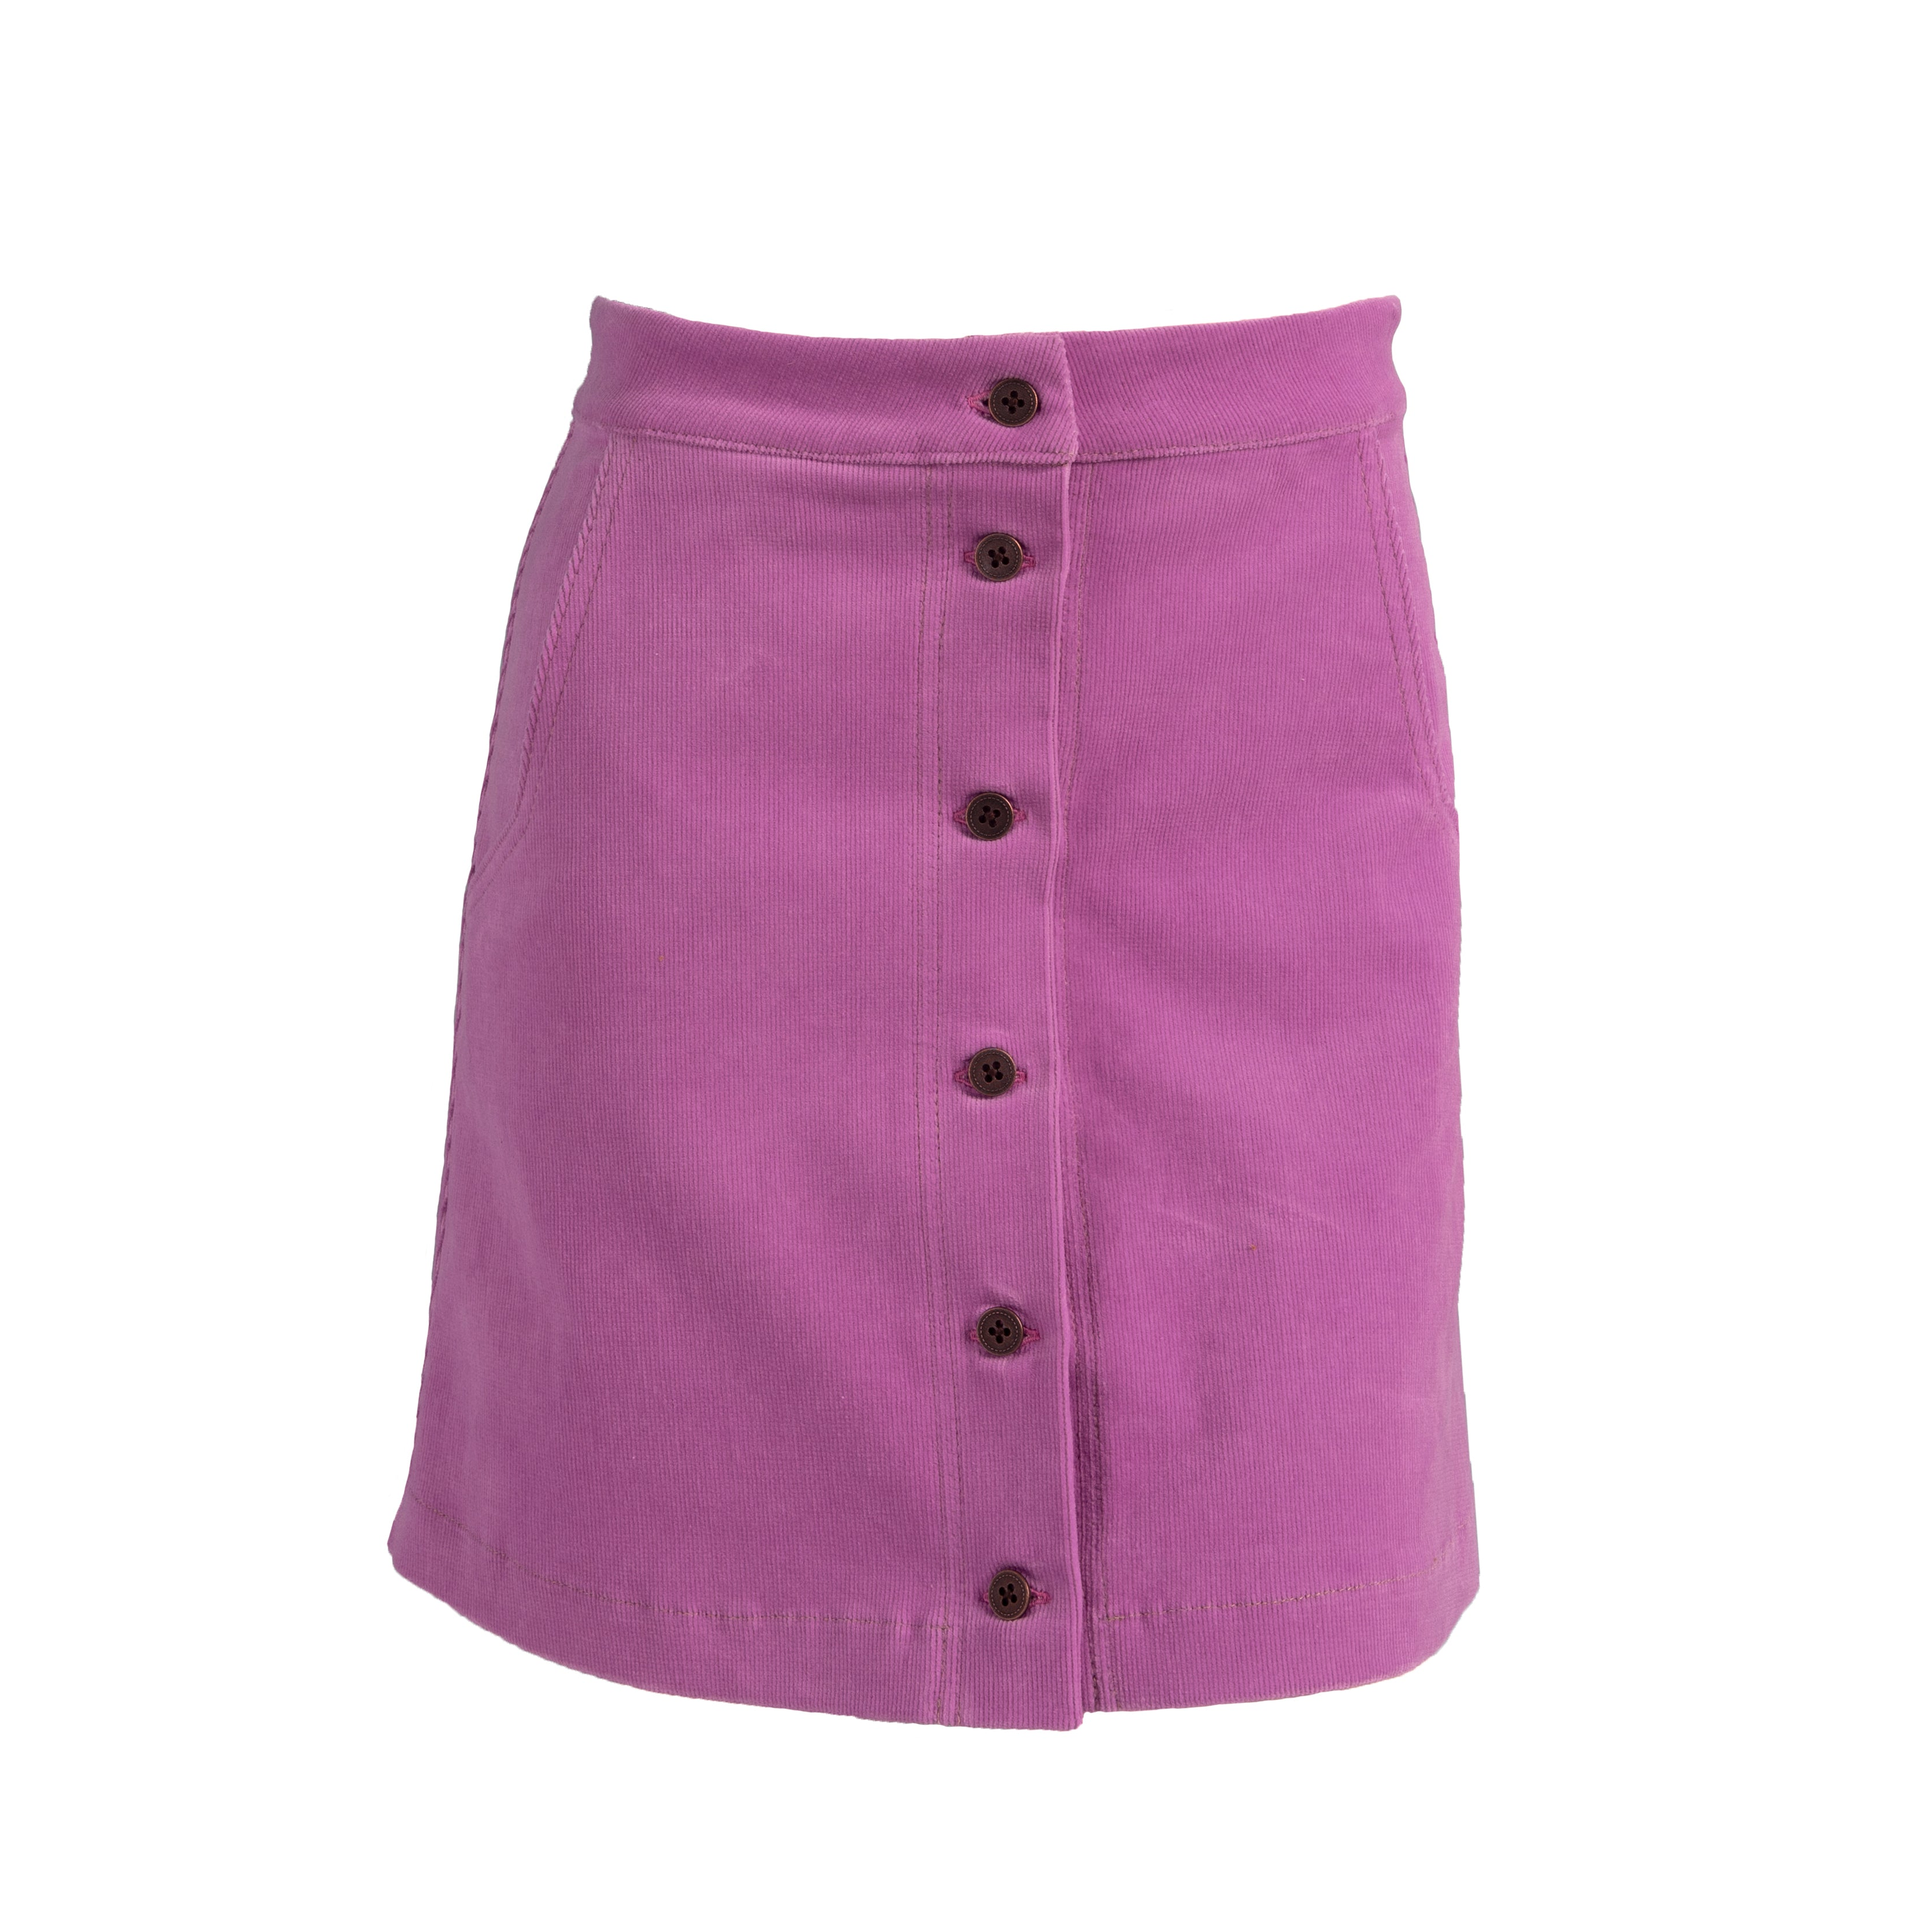 Ribbed Corduroy High Waist Button Up Mini Skirt Pink